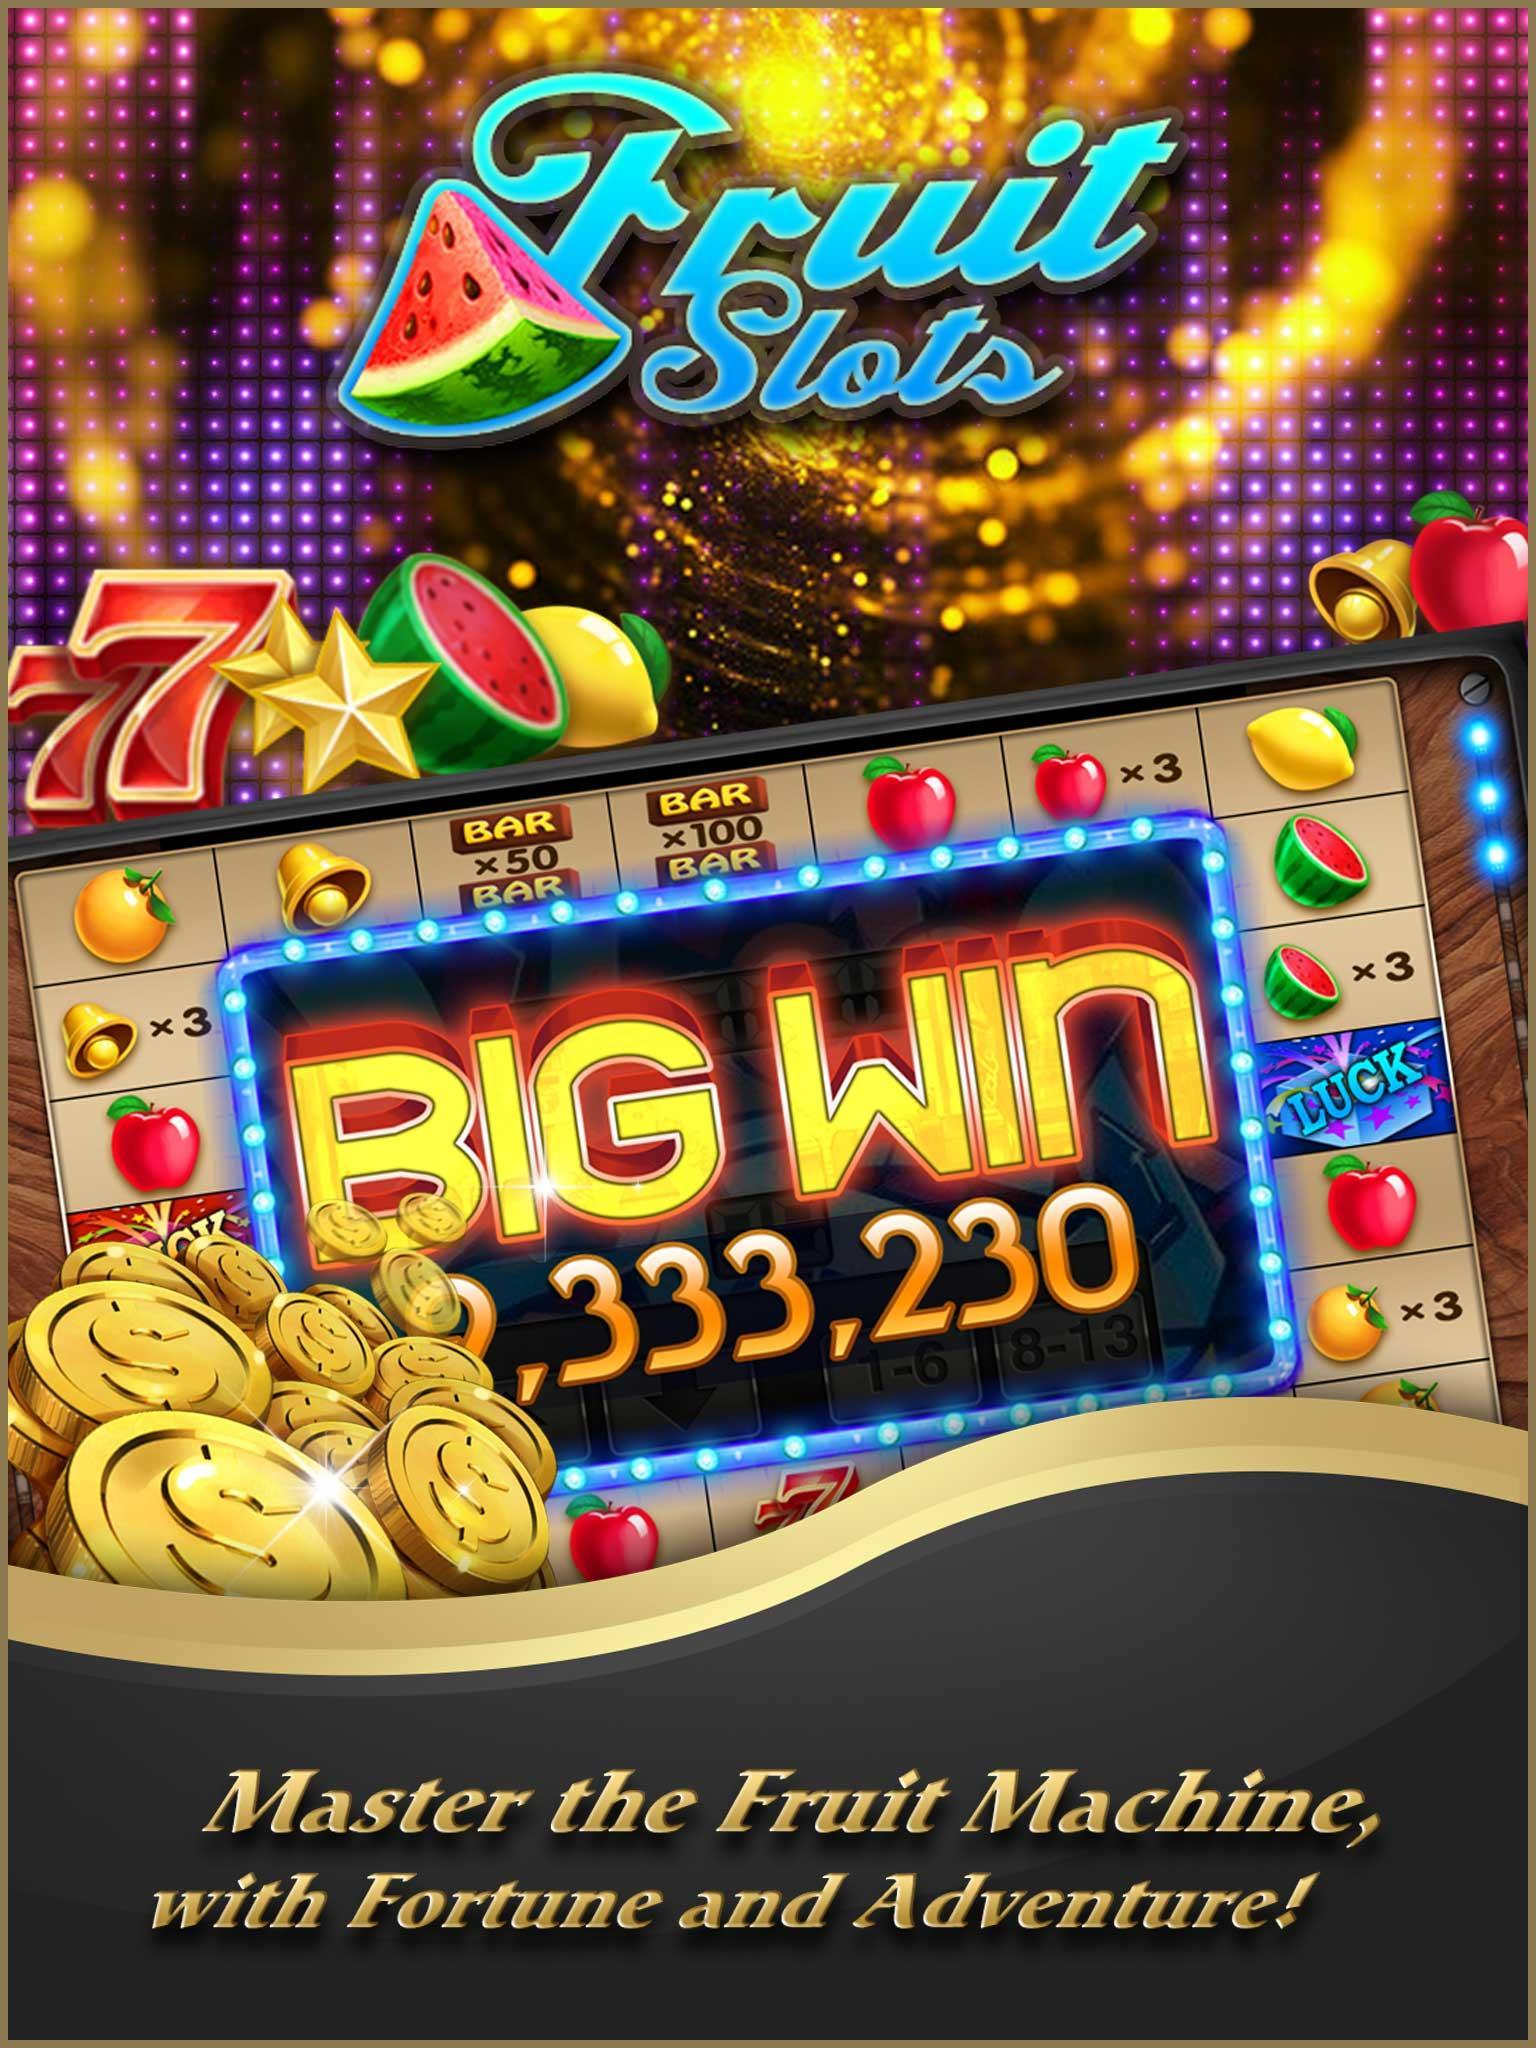 Download Fafafa Slots